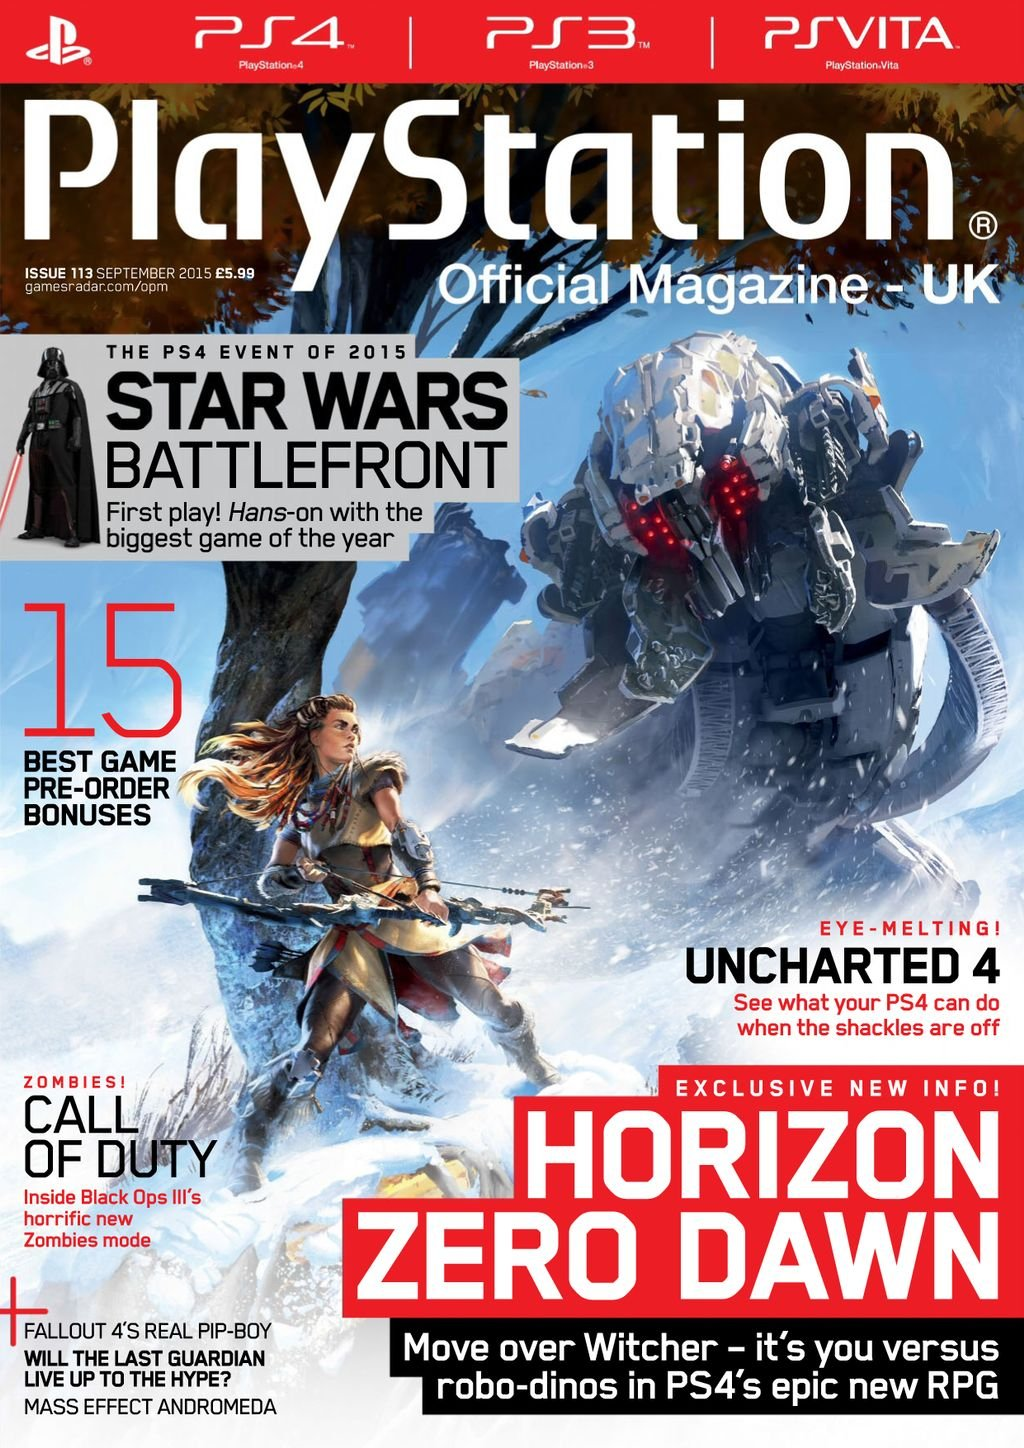 Playstation Official Magazine UK 113 (September 2015)